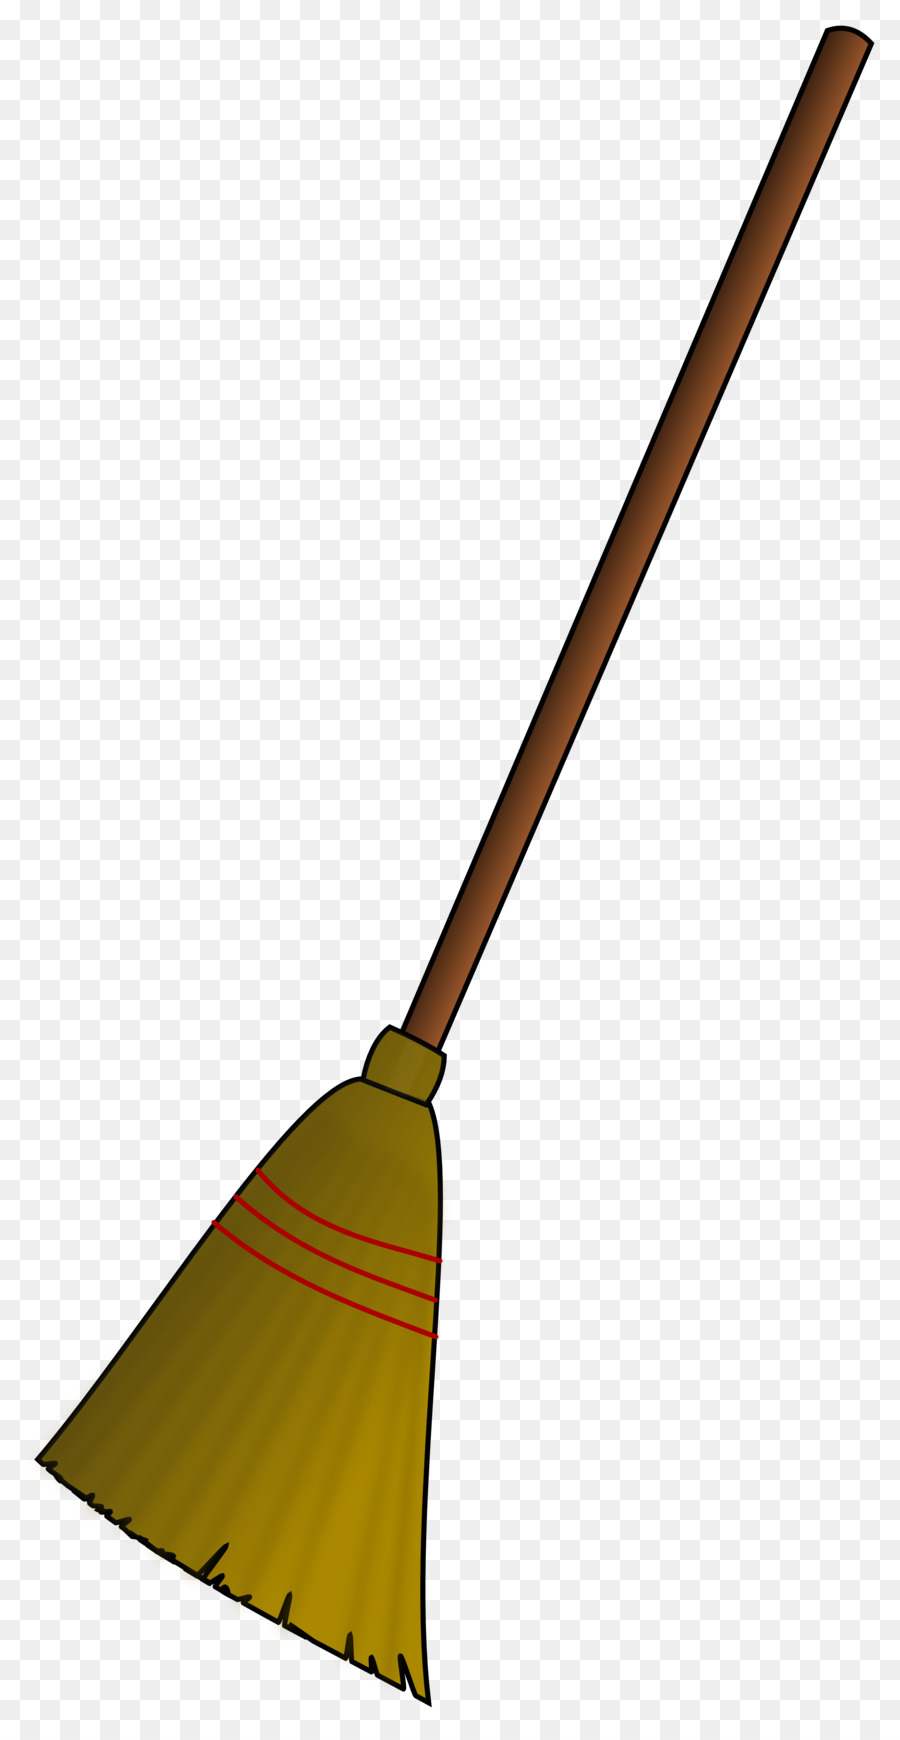 Transparent clip art cleaning. Broom clipart